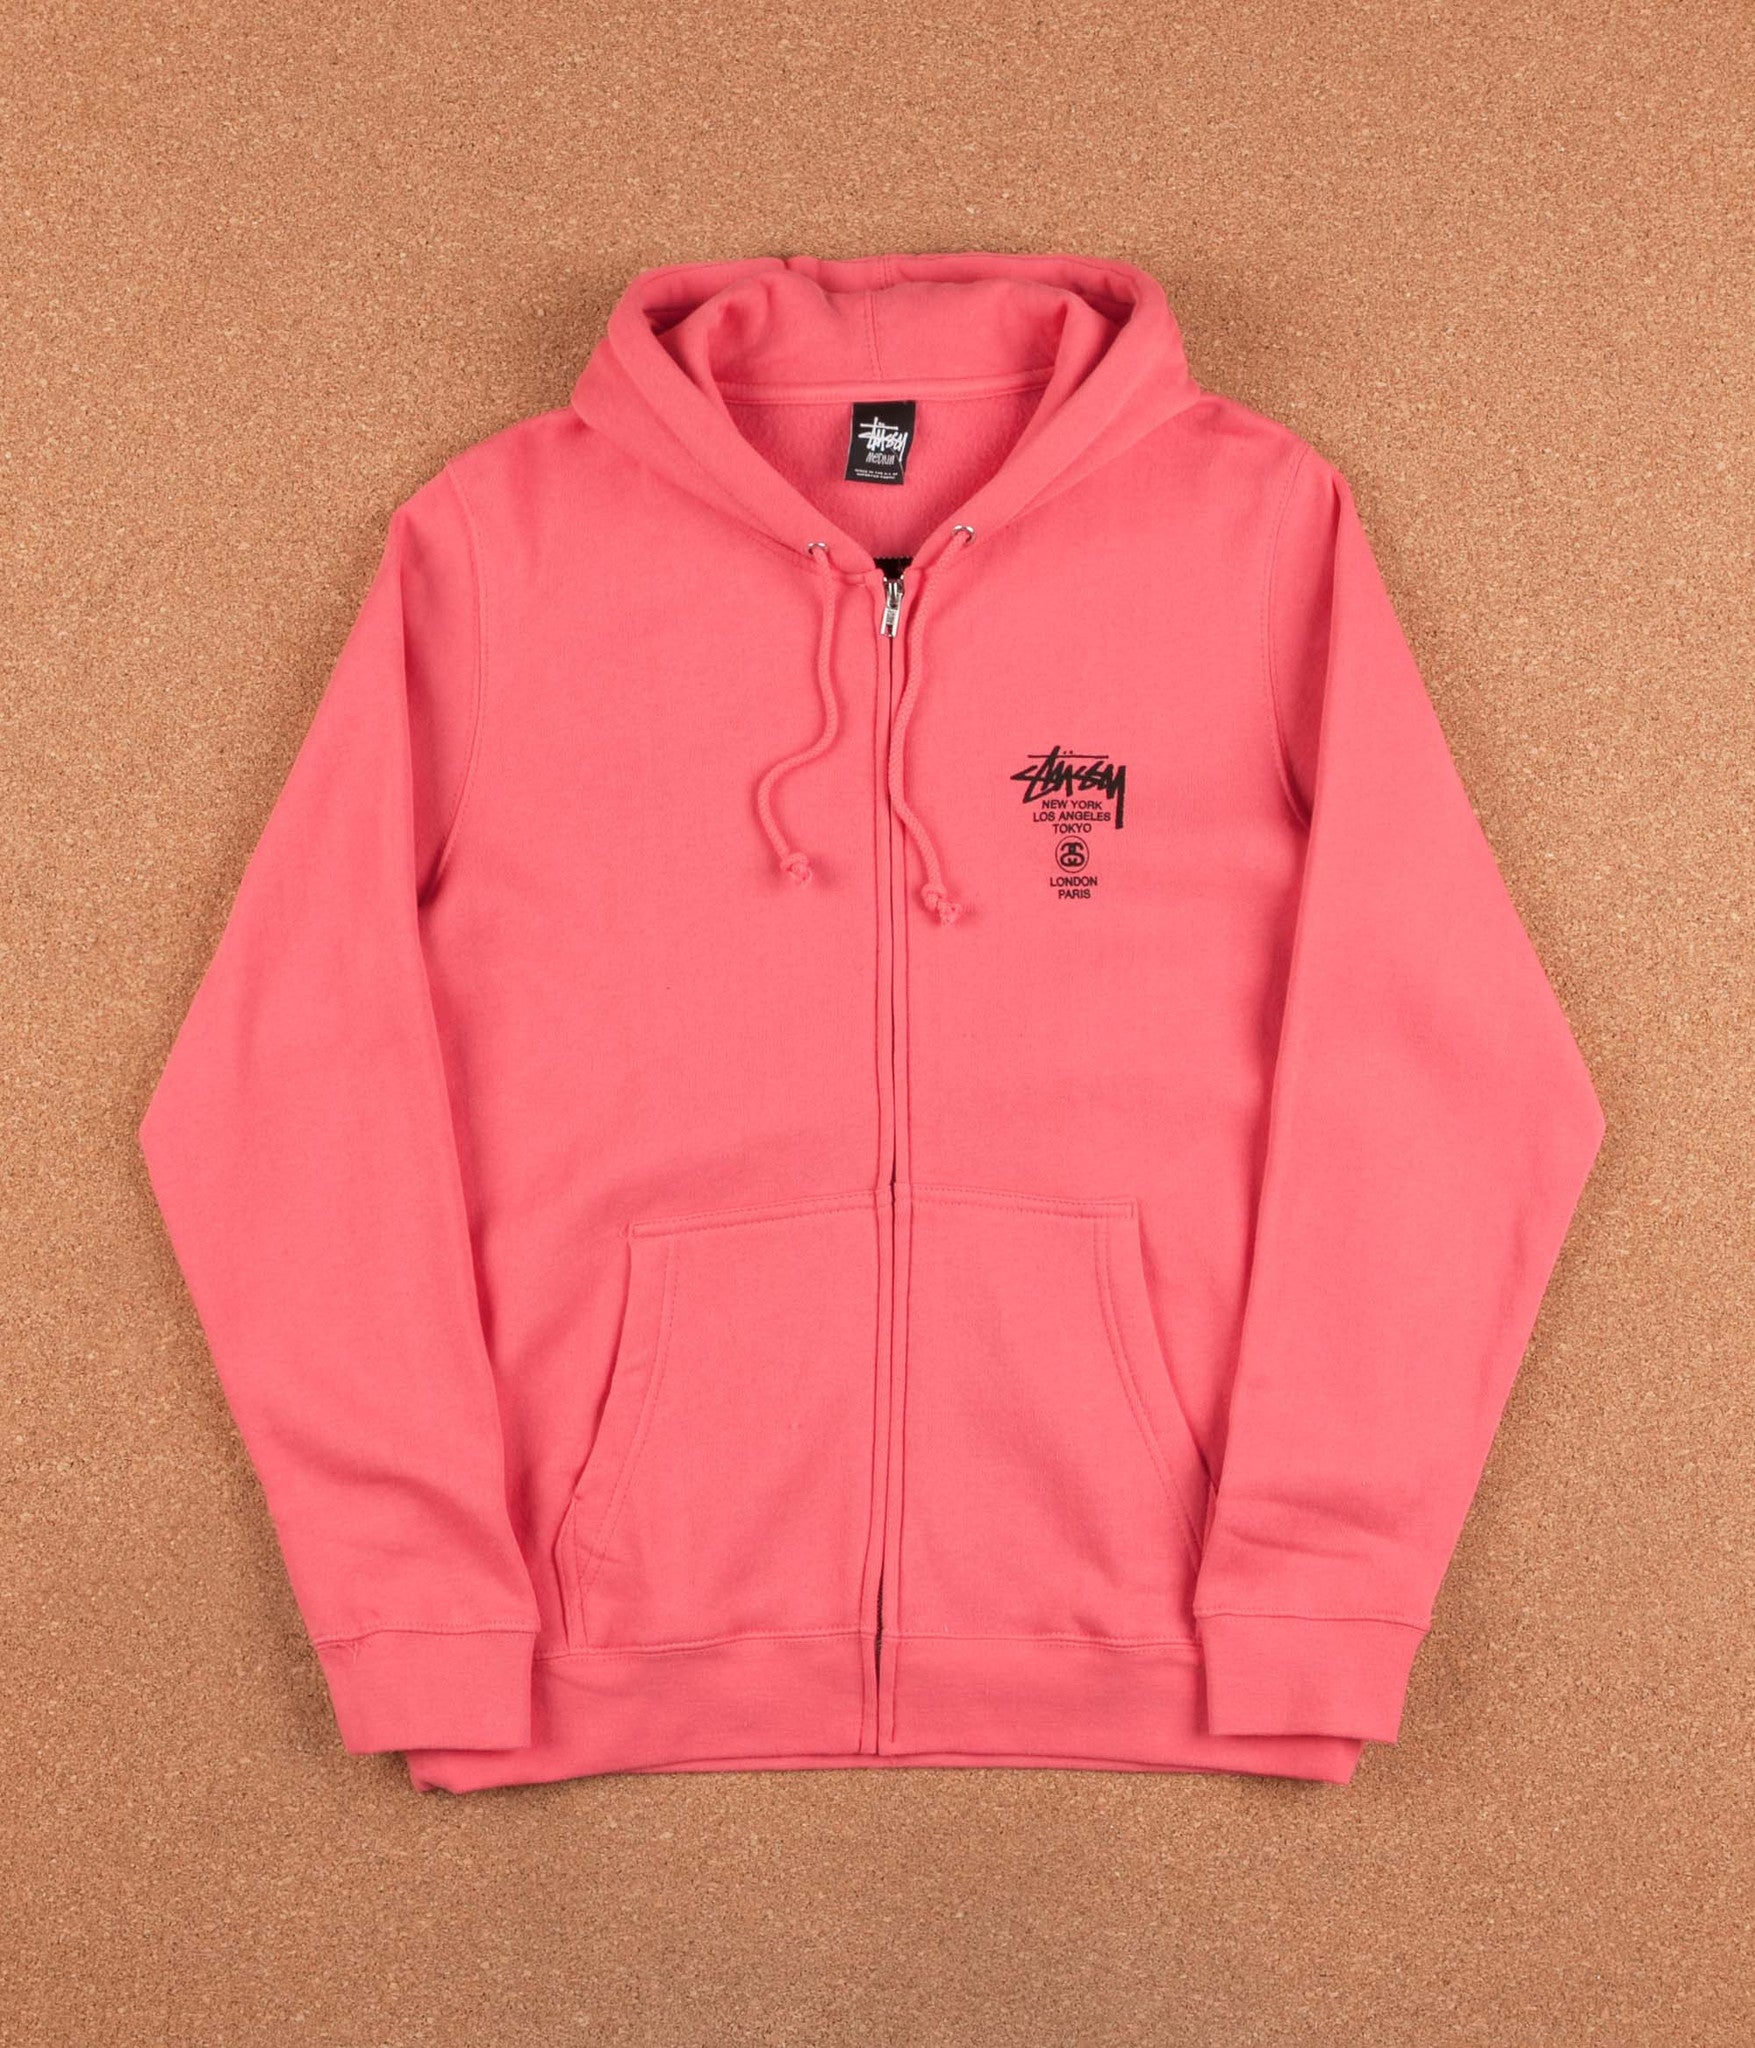 Stussy World Tour Zip Hooded Sweatshirt - Pink